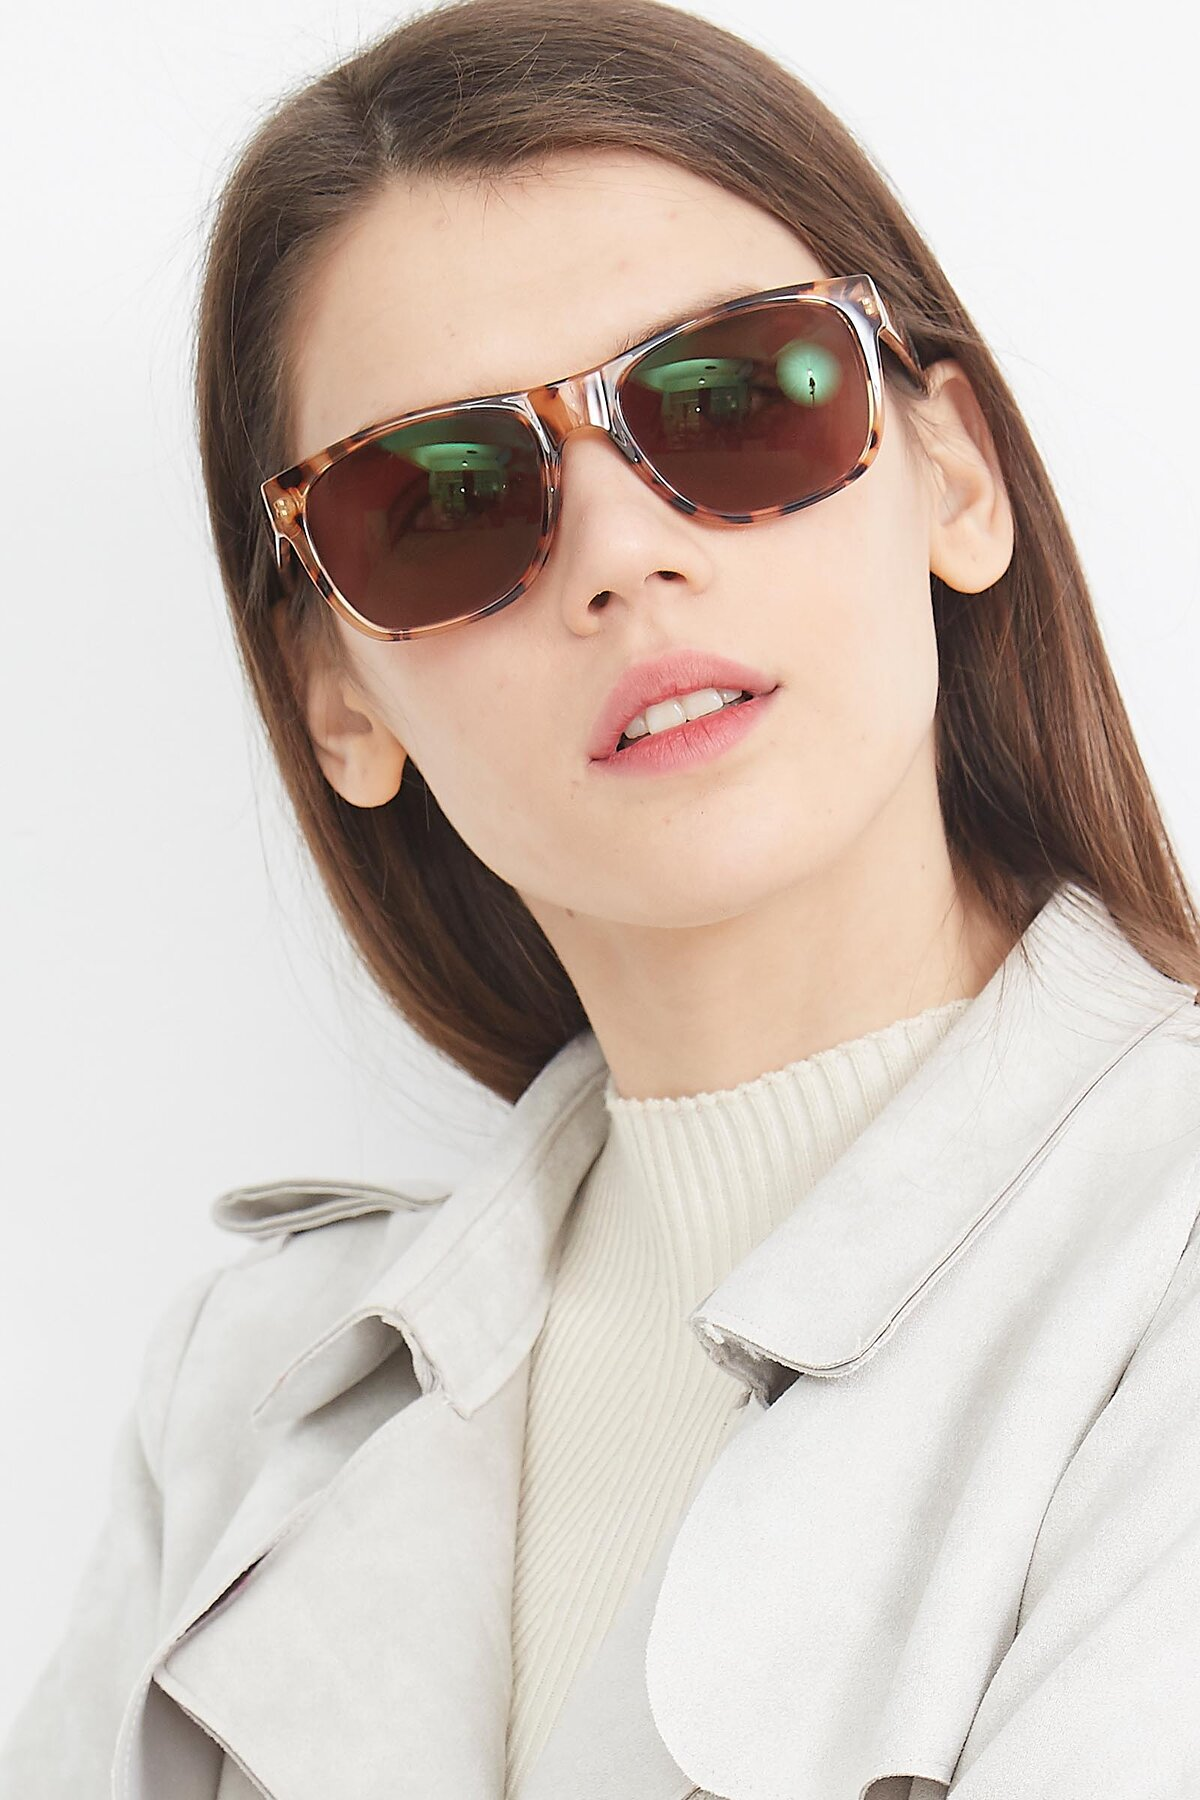 Women's lifestyle photography (portrait-1) of SSR213 in Translucent Tortoise with Brown Tinted Lenses